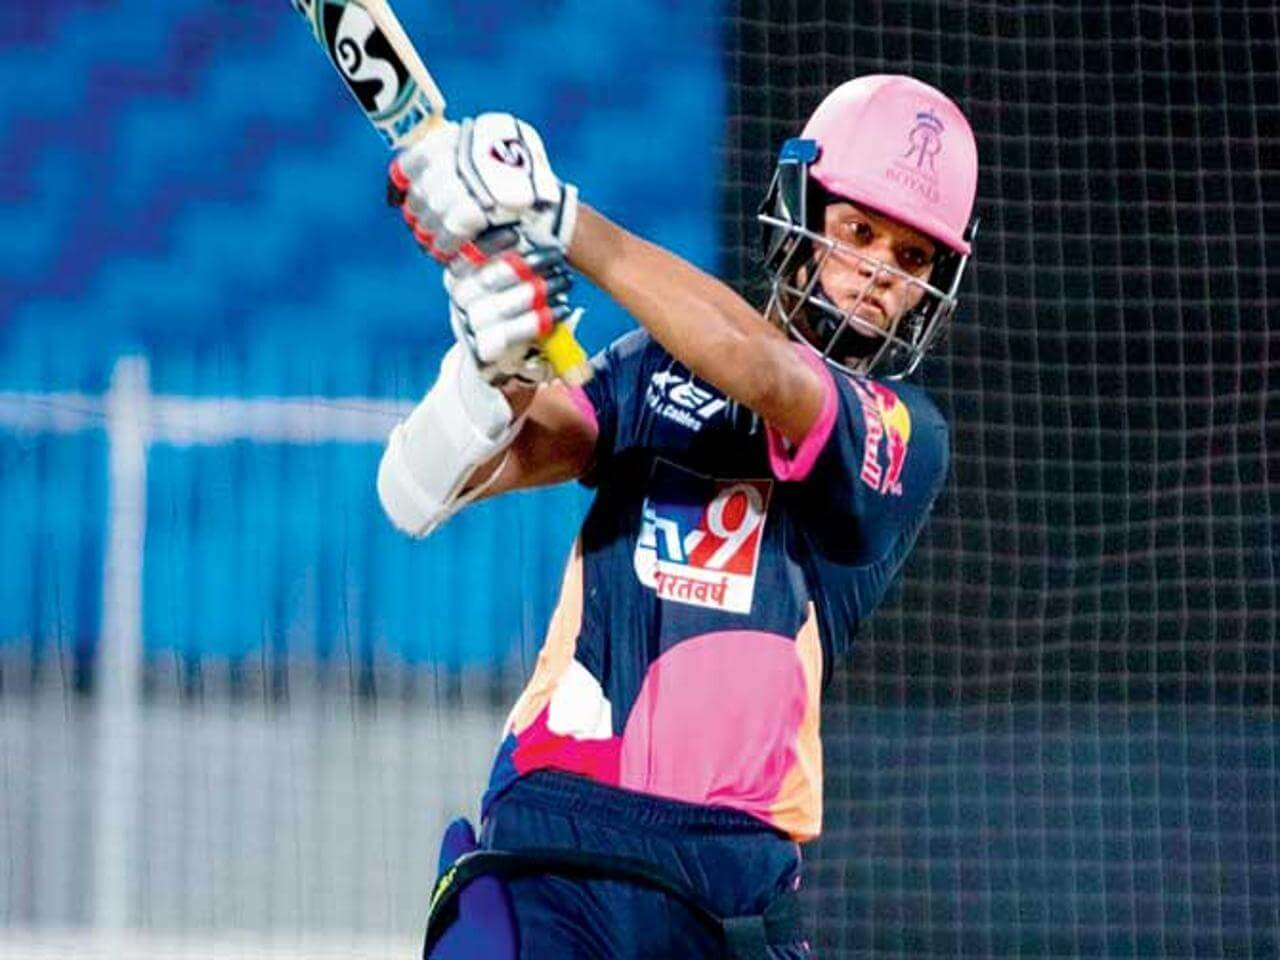 IPL 2020: Yashasvi Jaiswal make his debut with Rajasthan Royals, seeks MS Dhoni